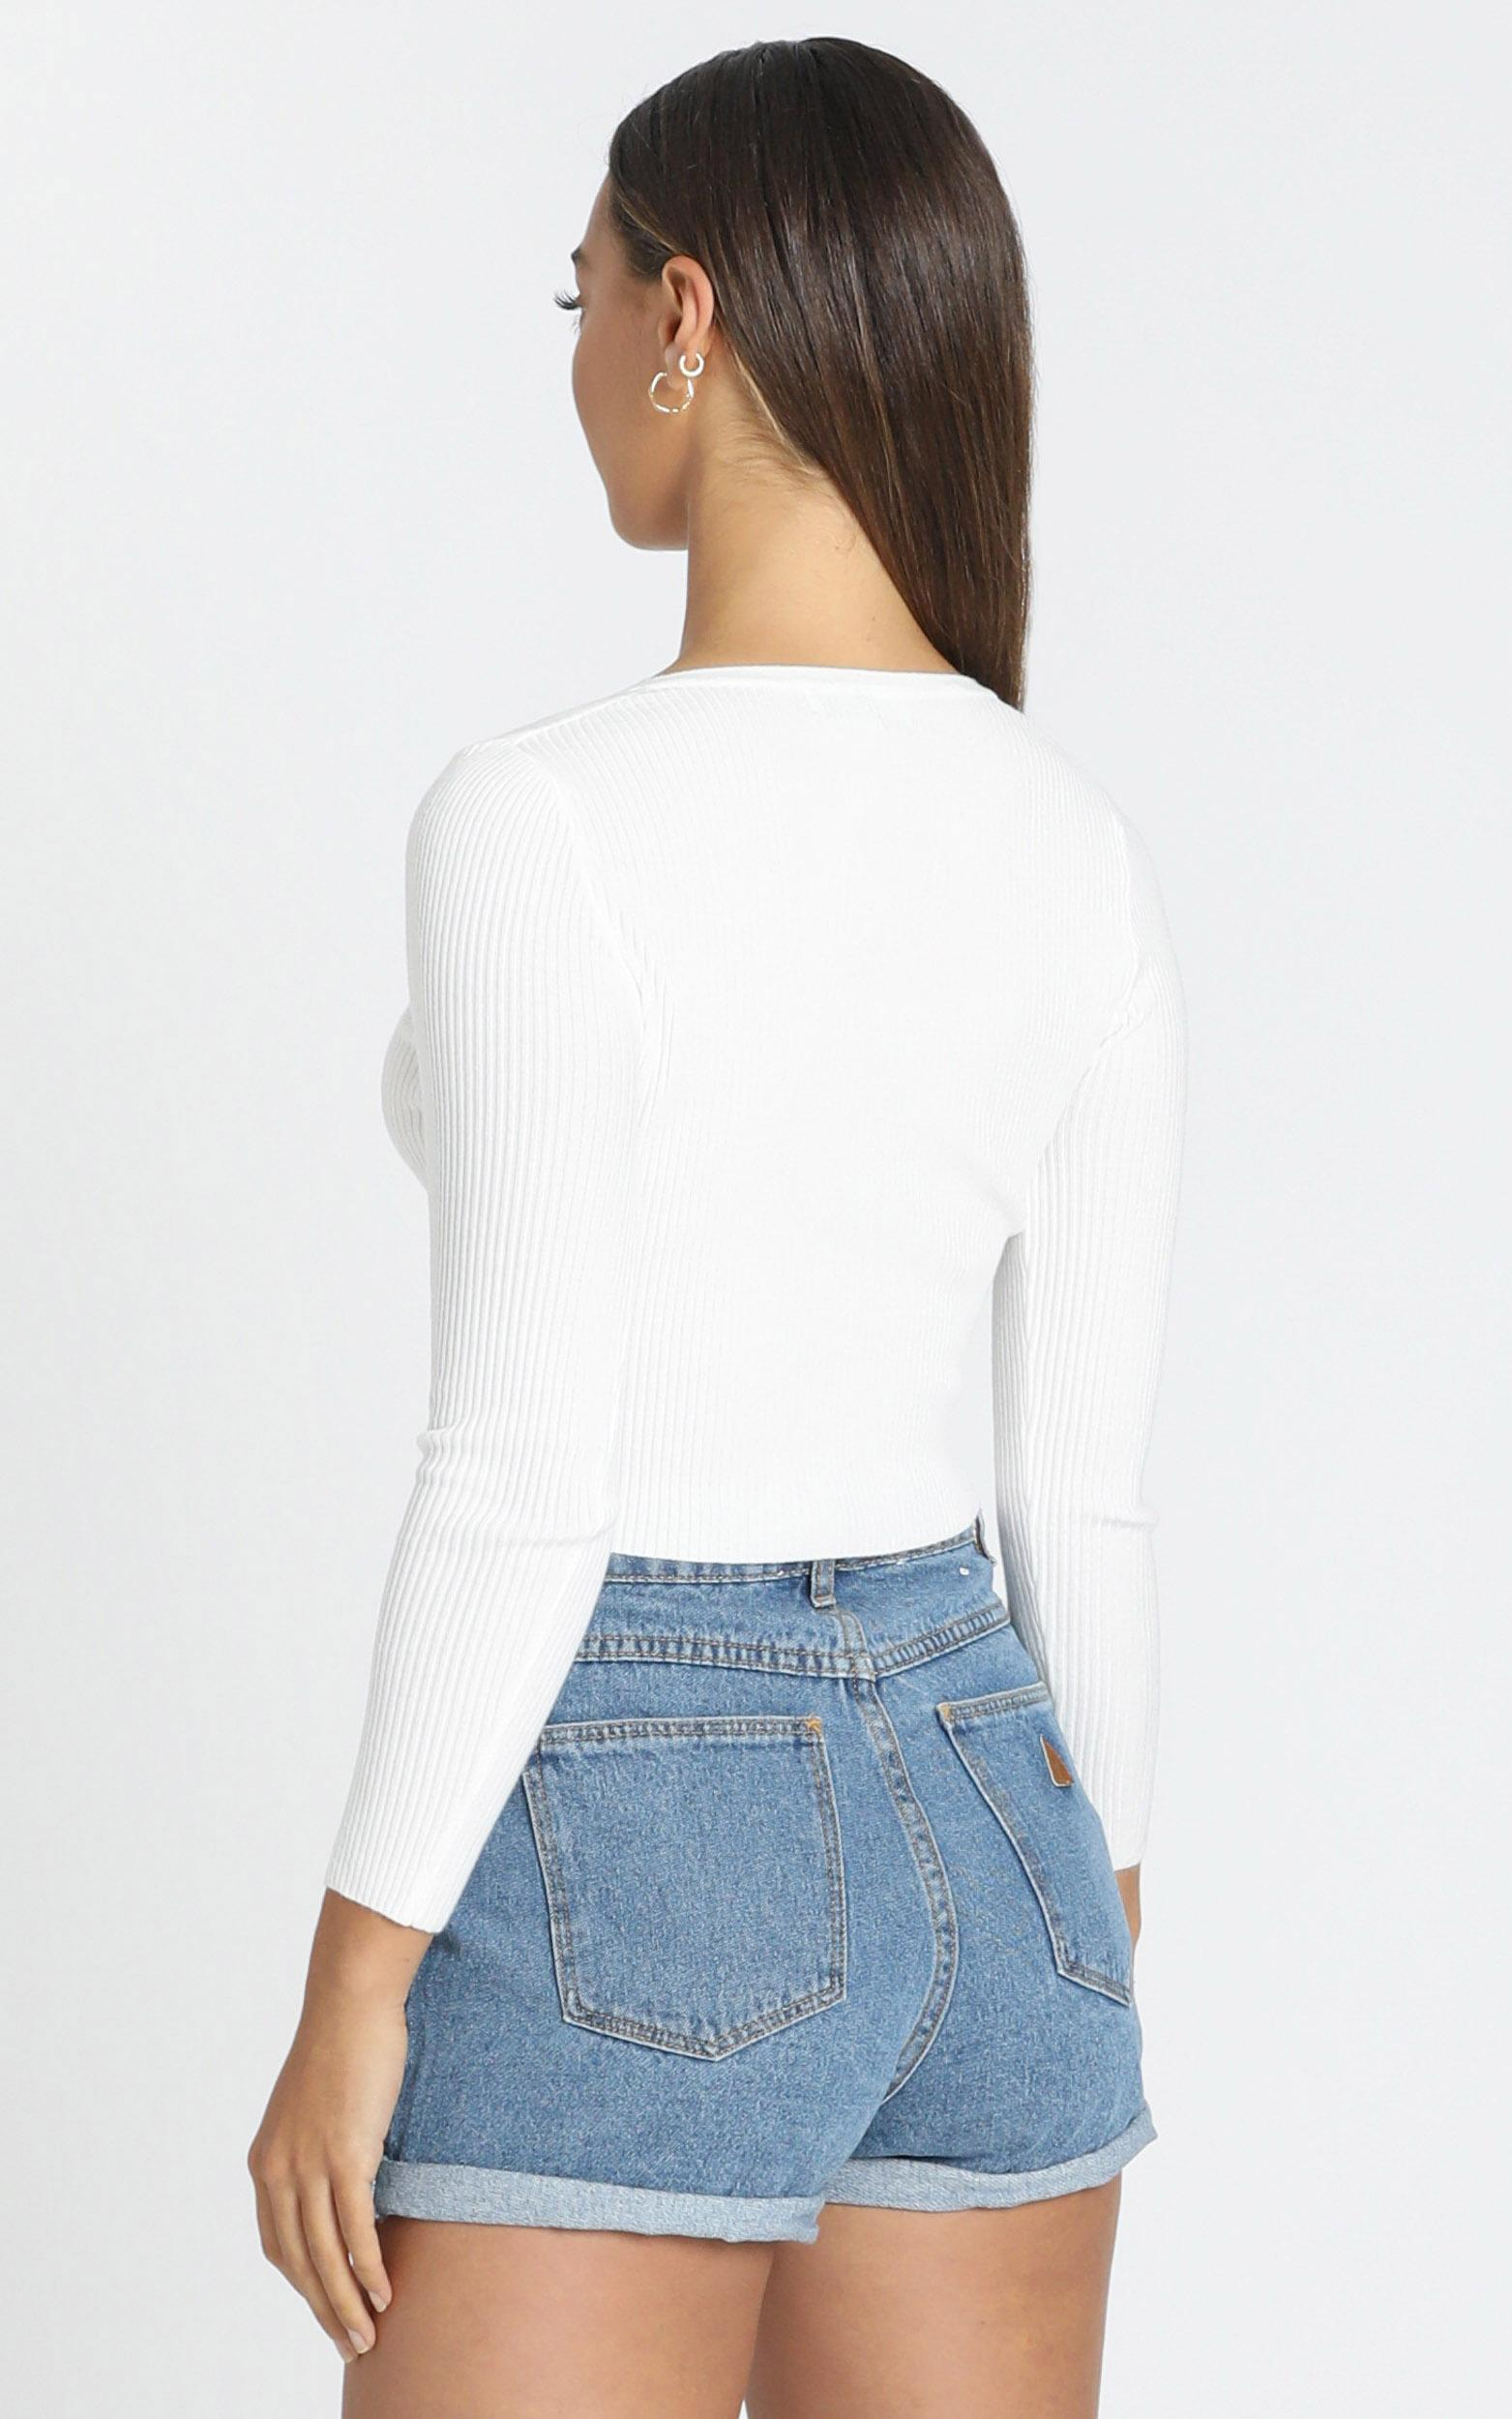 Faylinn Top in White - 6 (XS), White, hi-res image number null